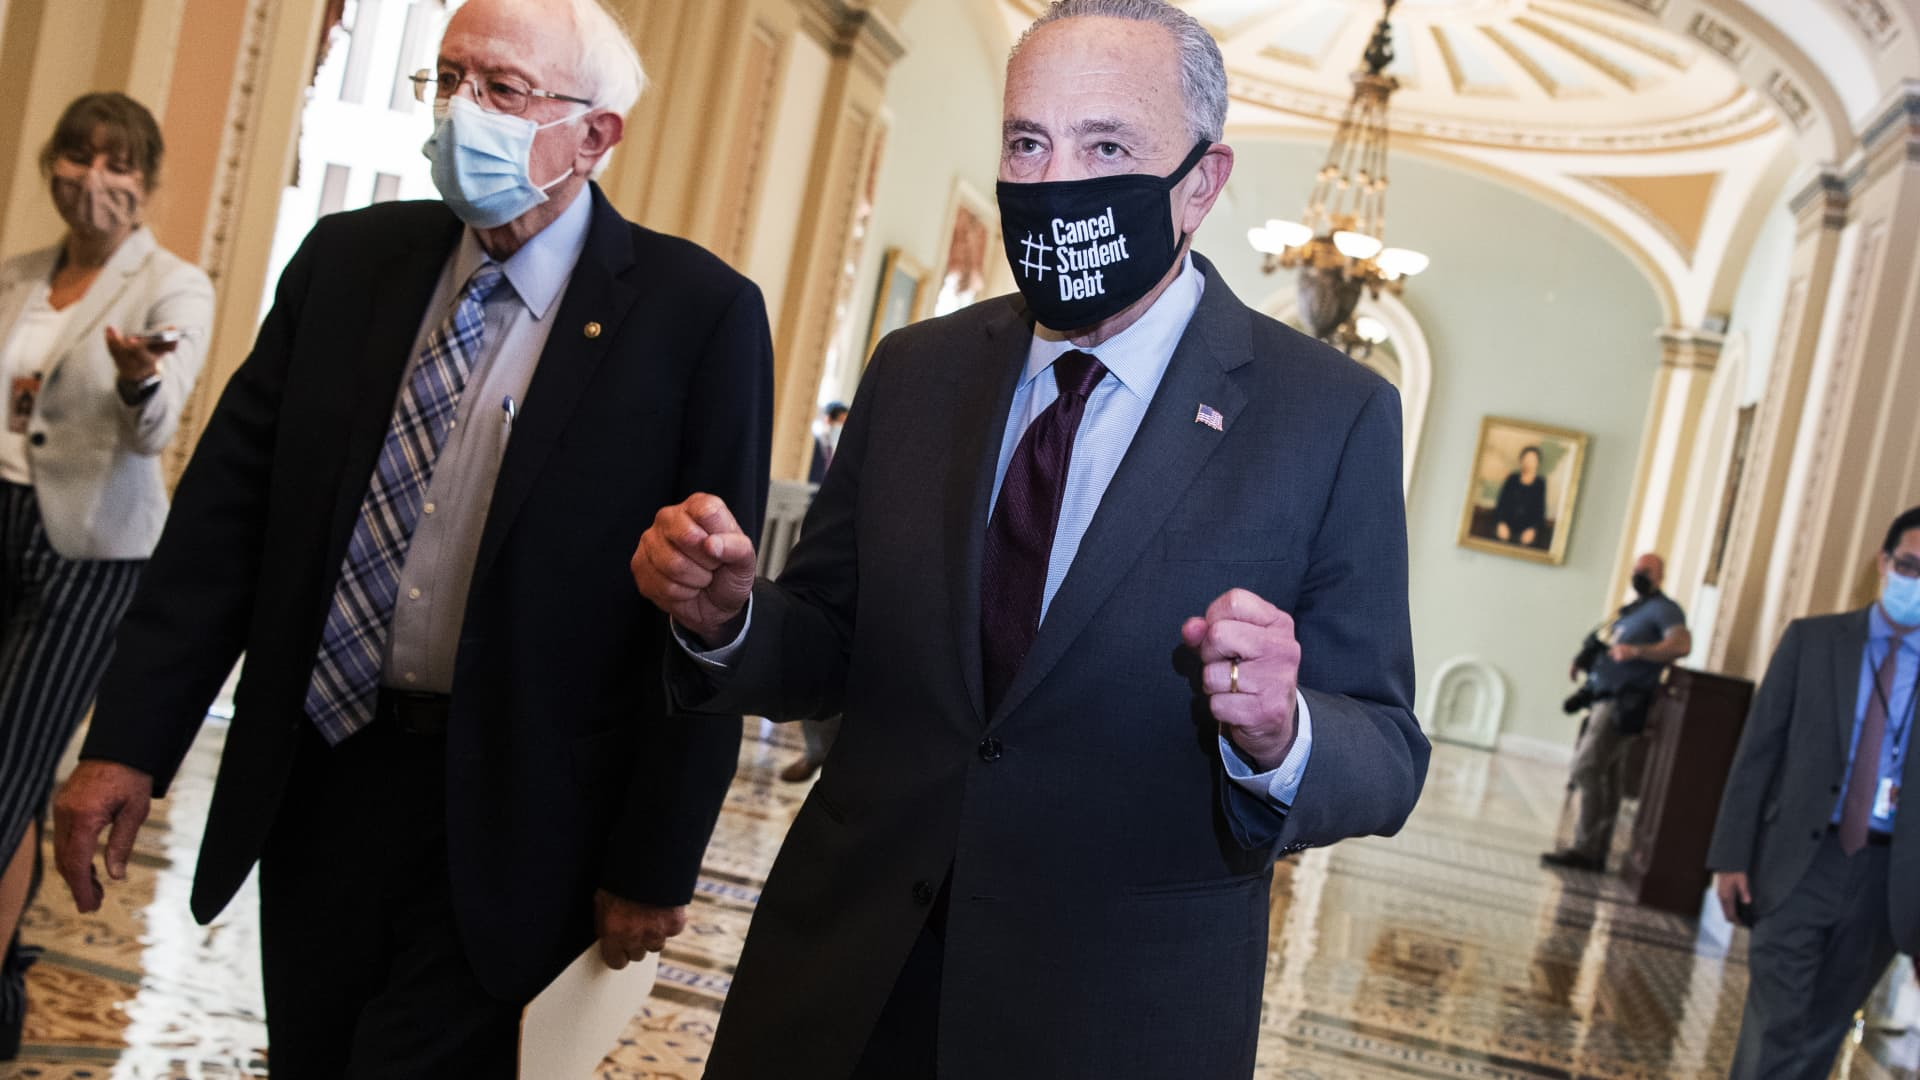 Senate Majority Leader Charles Schumer, D-N.Y., right, and Sen. Bernie Sanders, I-Vt., are seen in the U.S. Capitol on Monday, August 9, 2021.